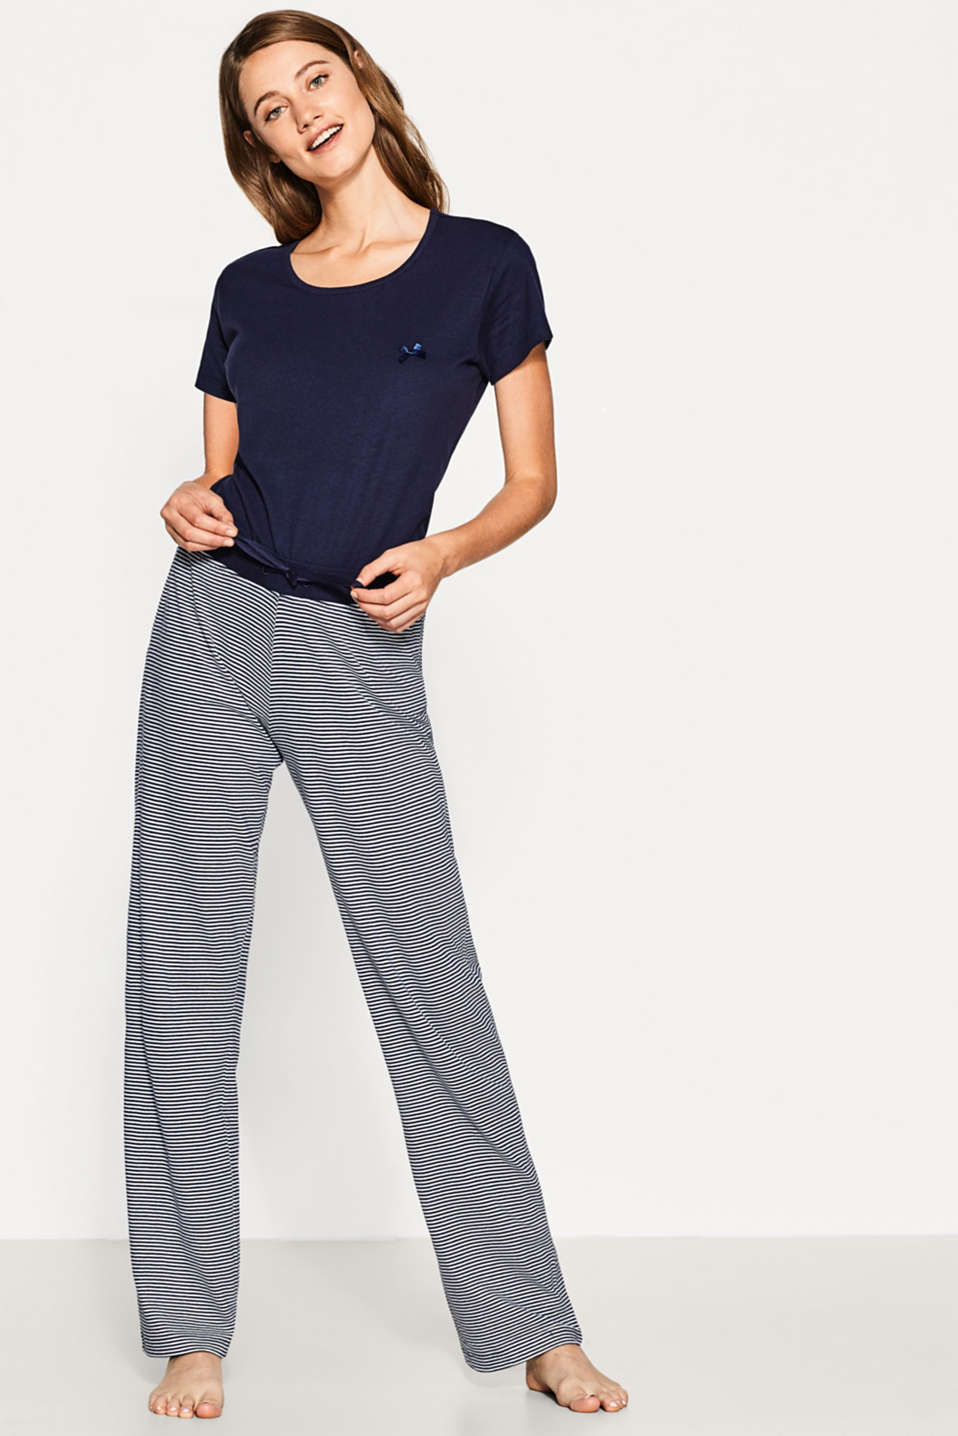 Esprit - Casual jersey trousers in 100% cotton